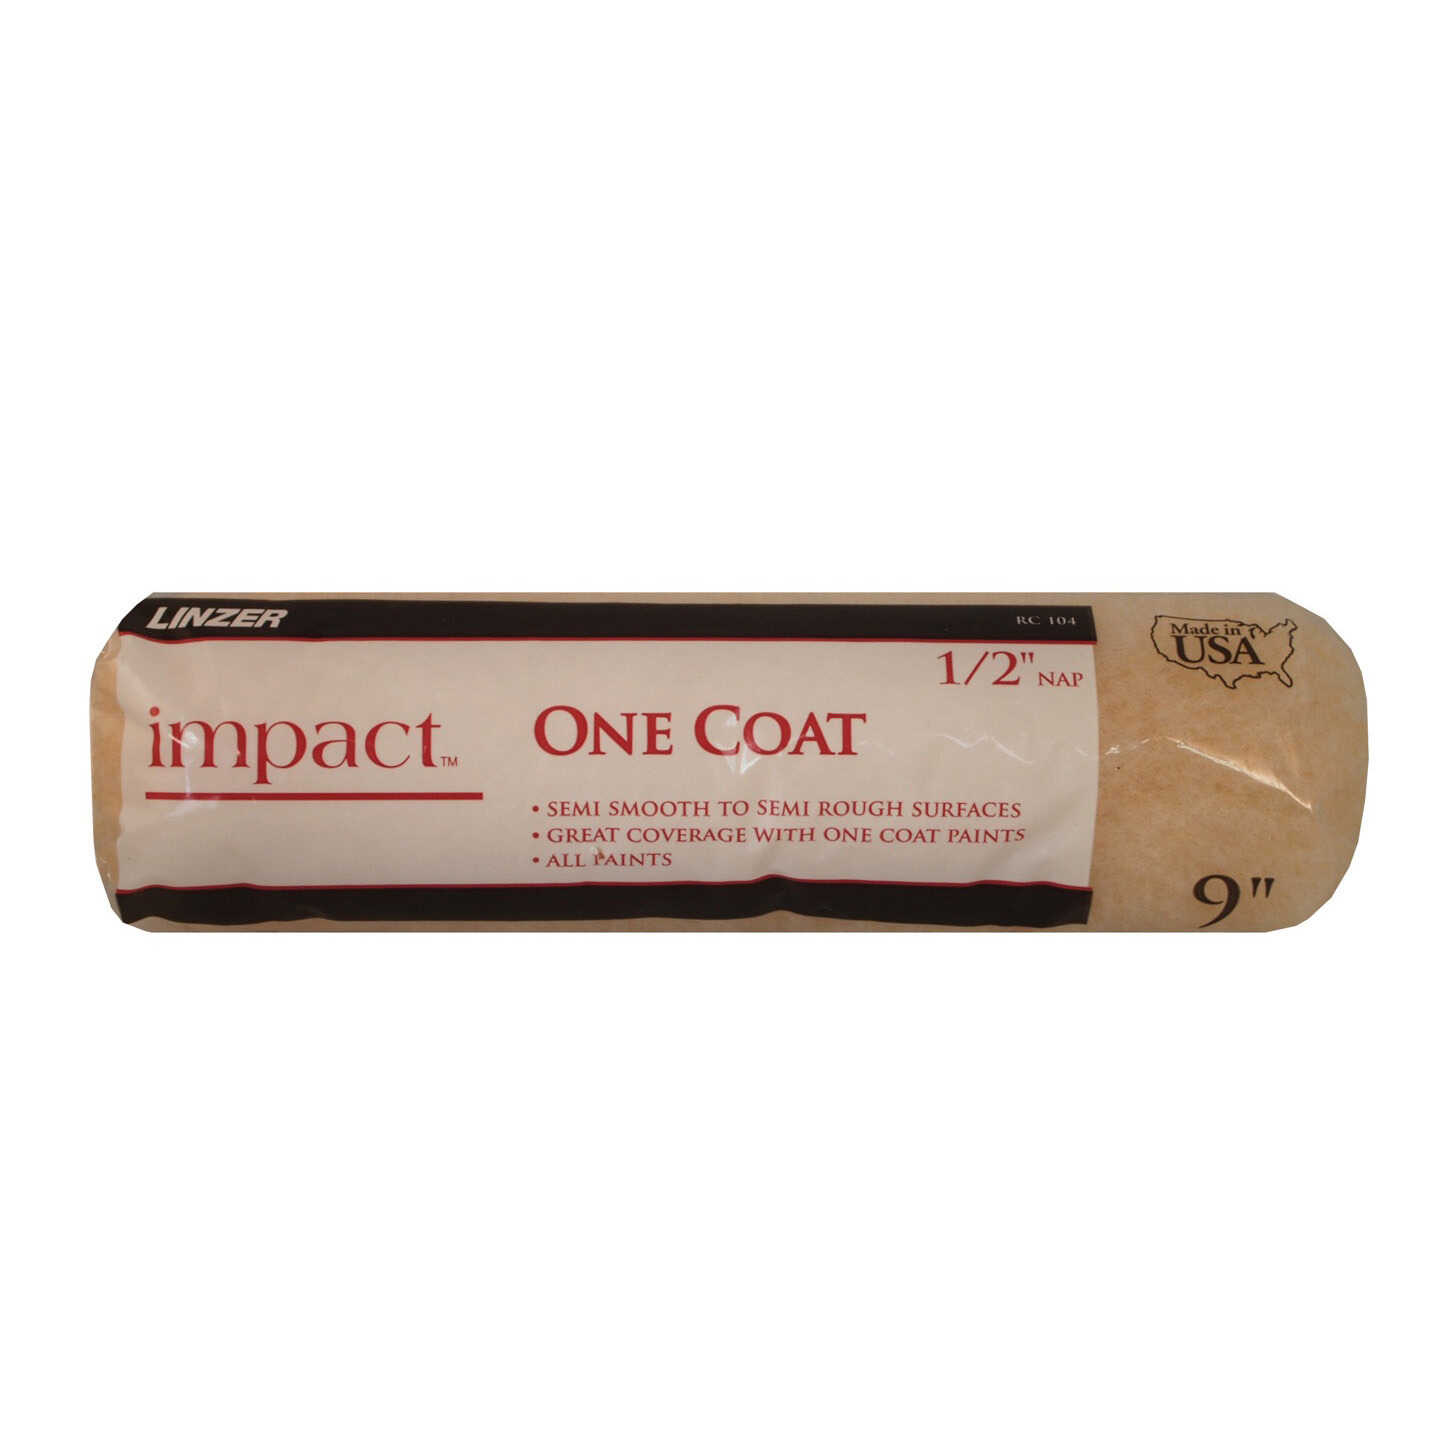 """Linzer 9"""" x 1/2"""" Impact Knit Roller Cover Image 1"""